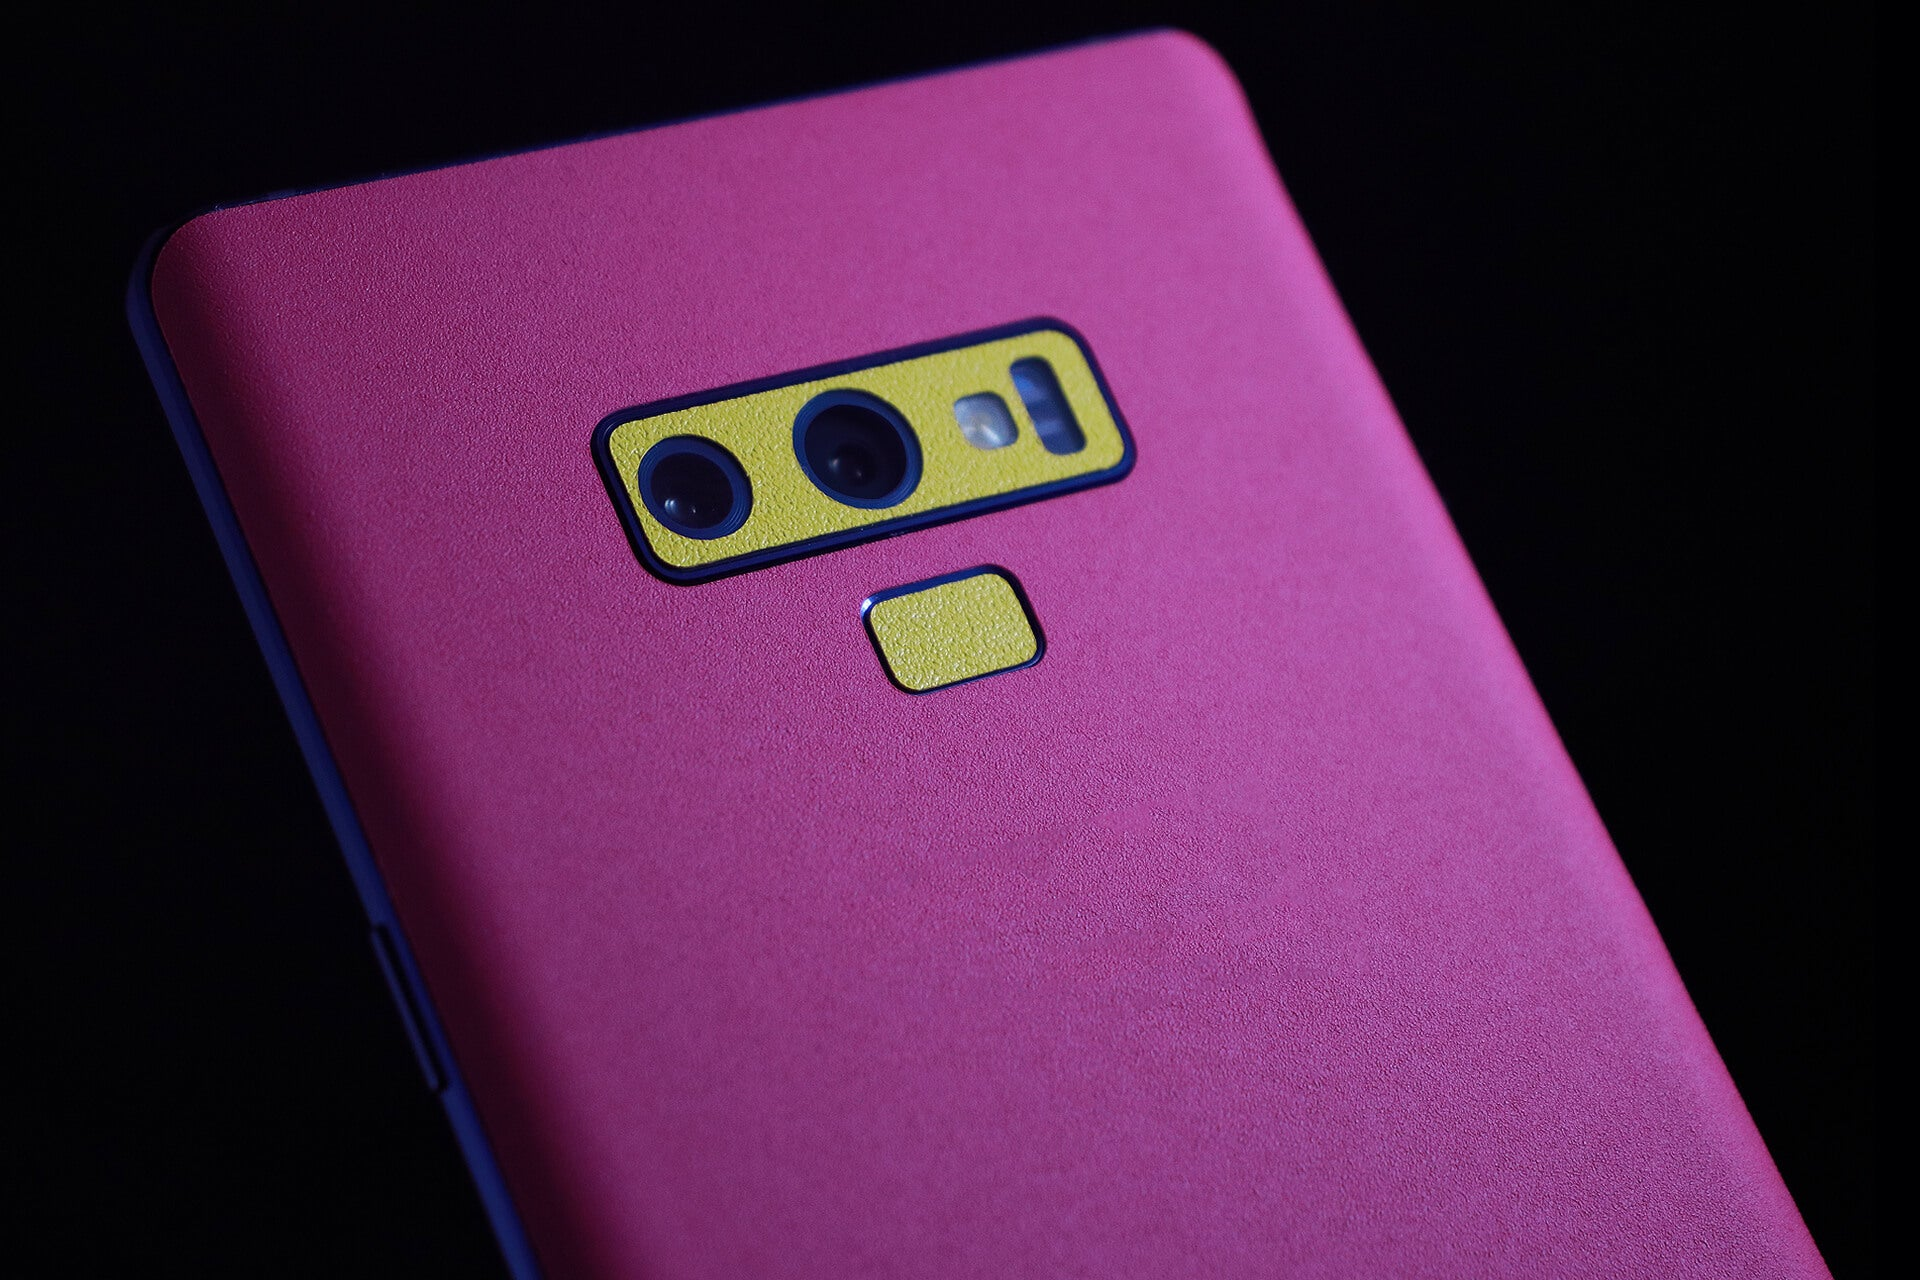 Samsung Galaxy Note 9 True Colour Pink Skins